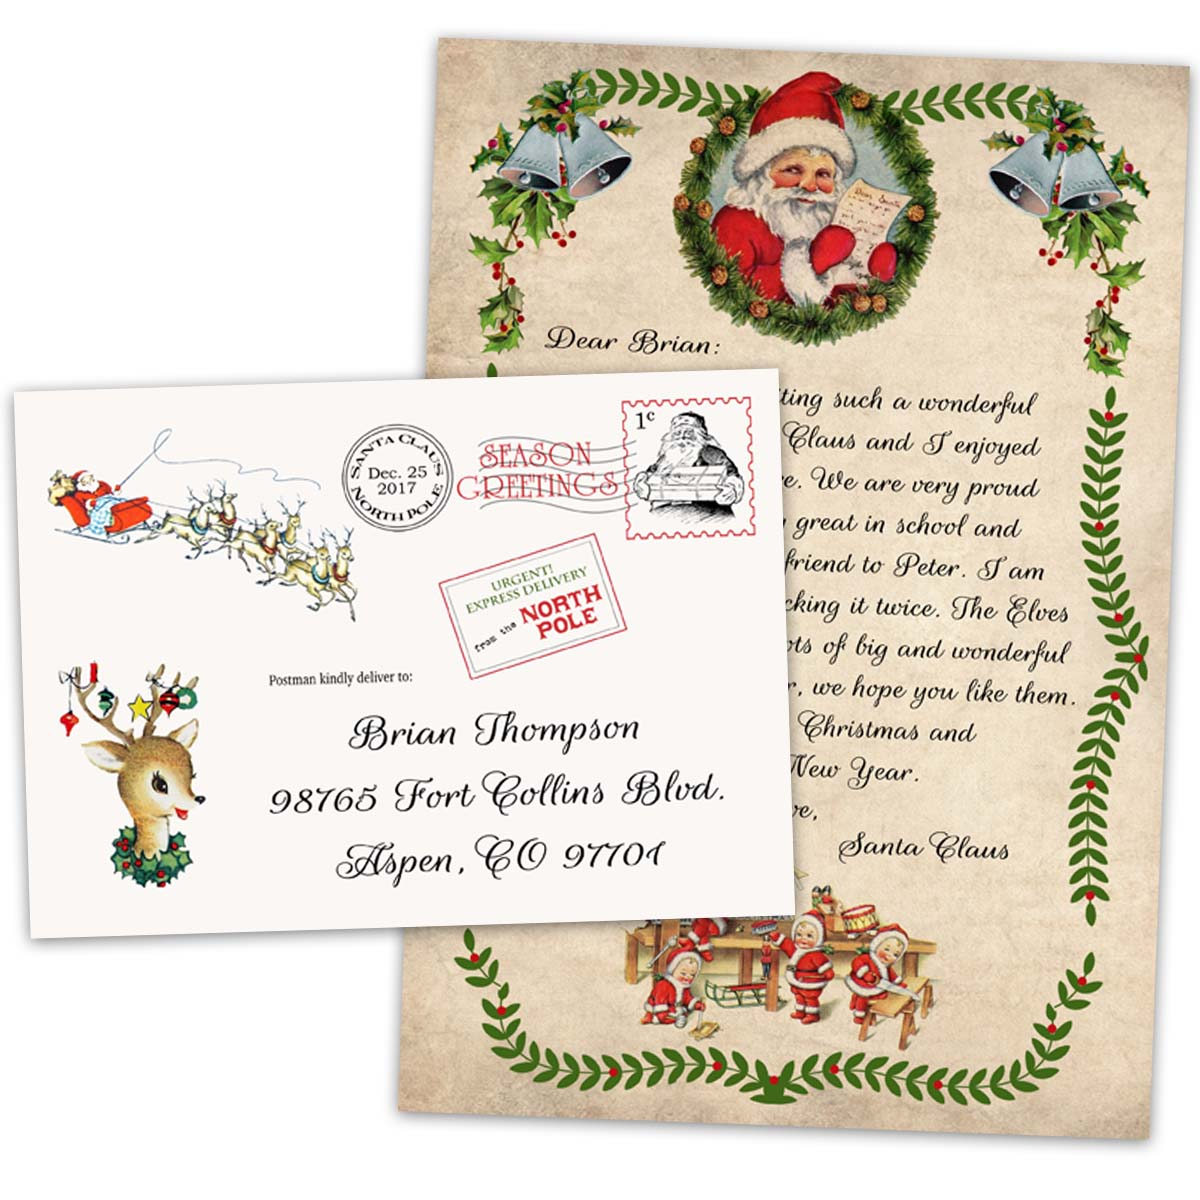 official pole mail personalized letters from santa official letter to child from santa claus from the pole 875